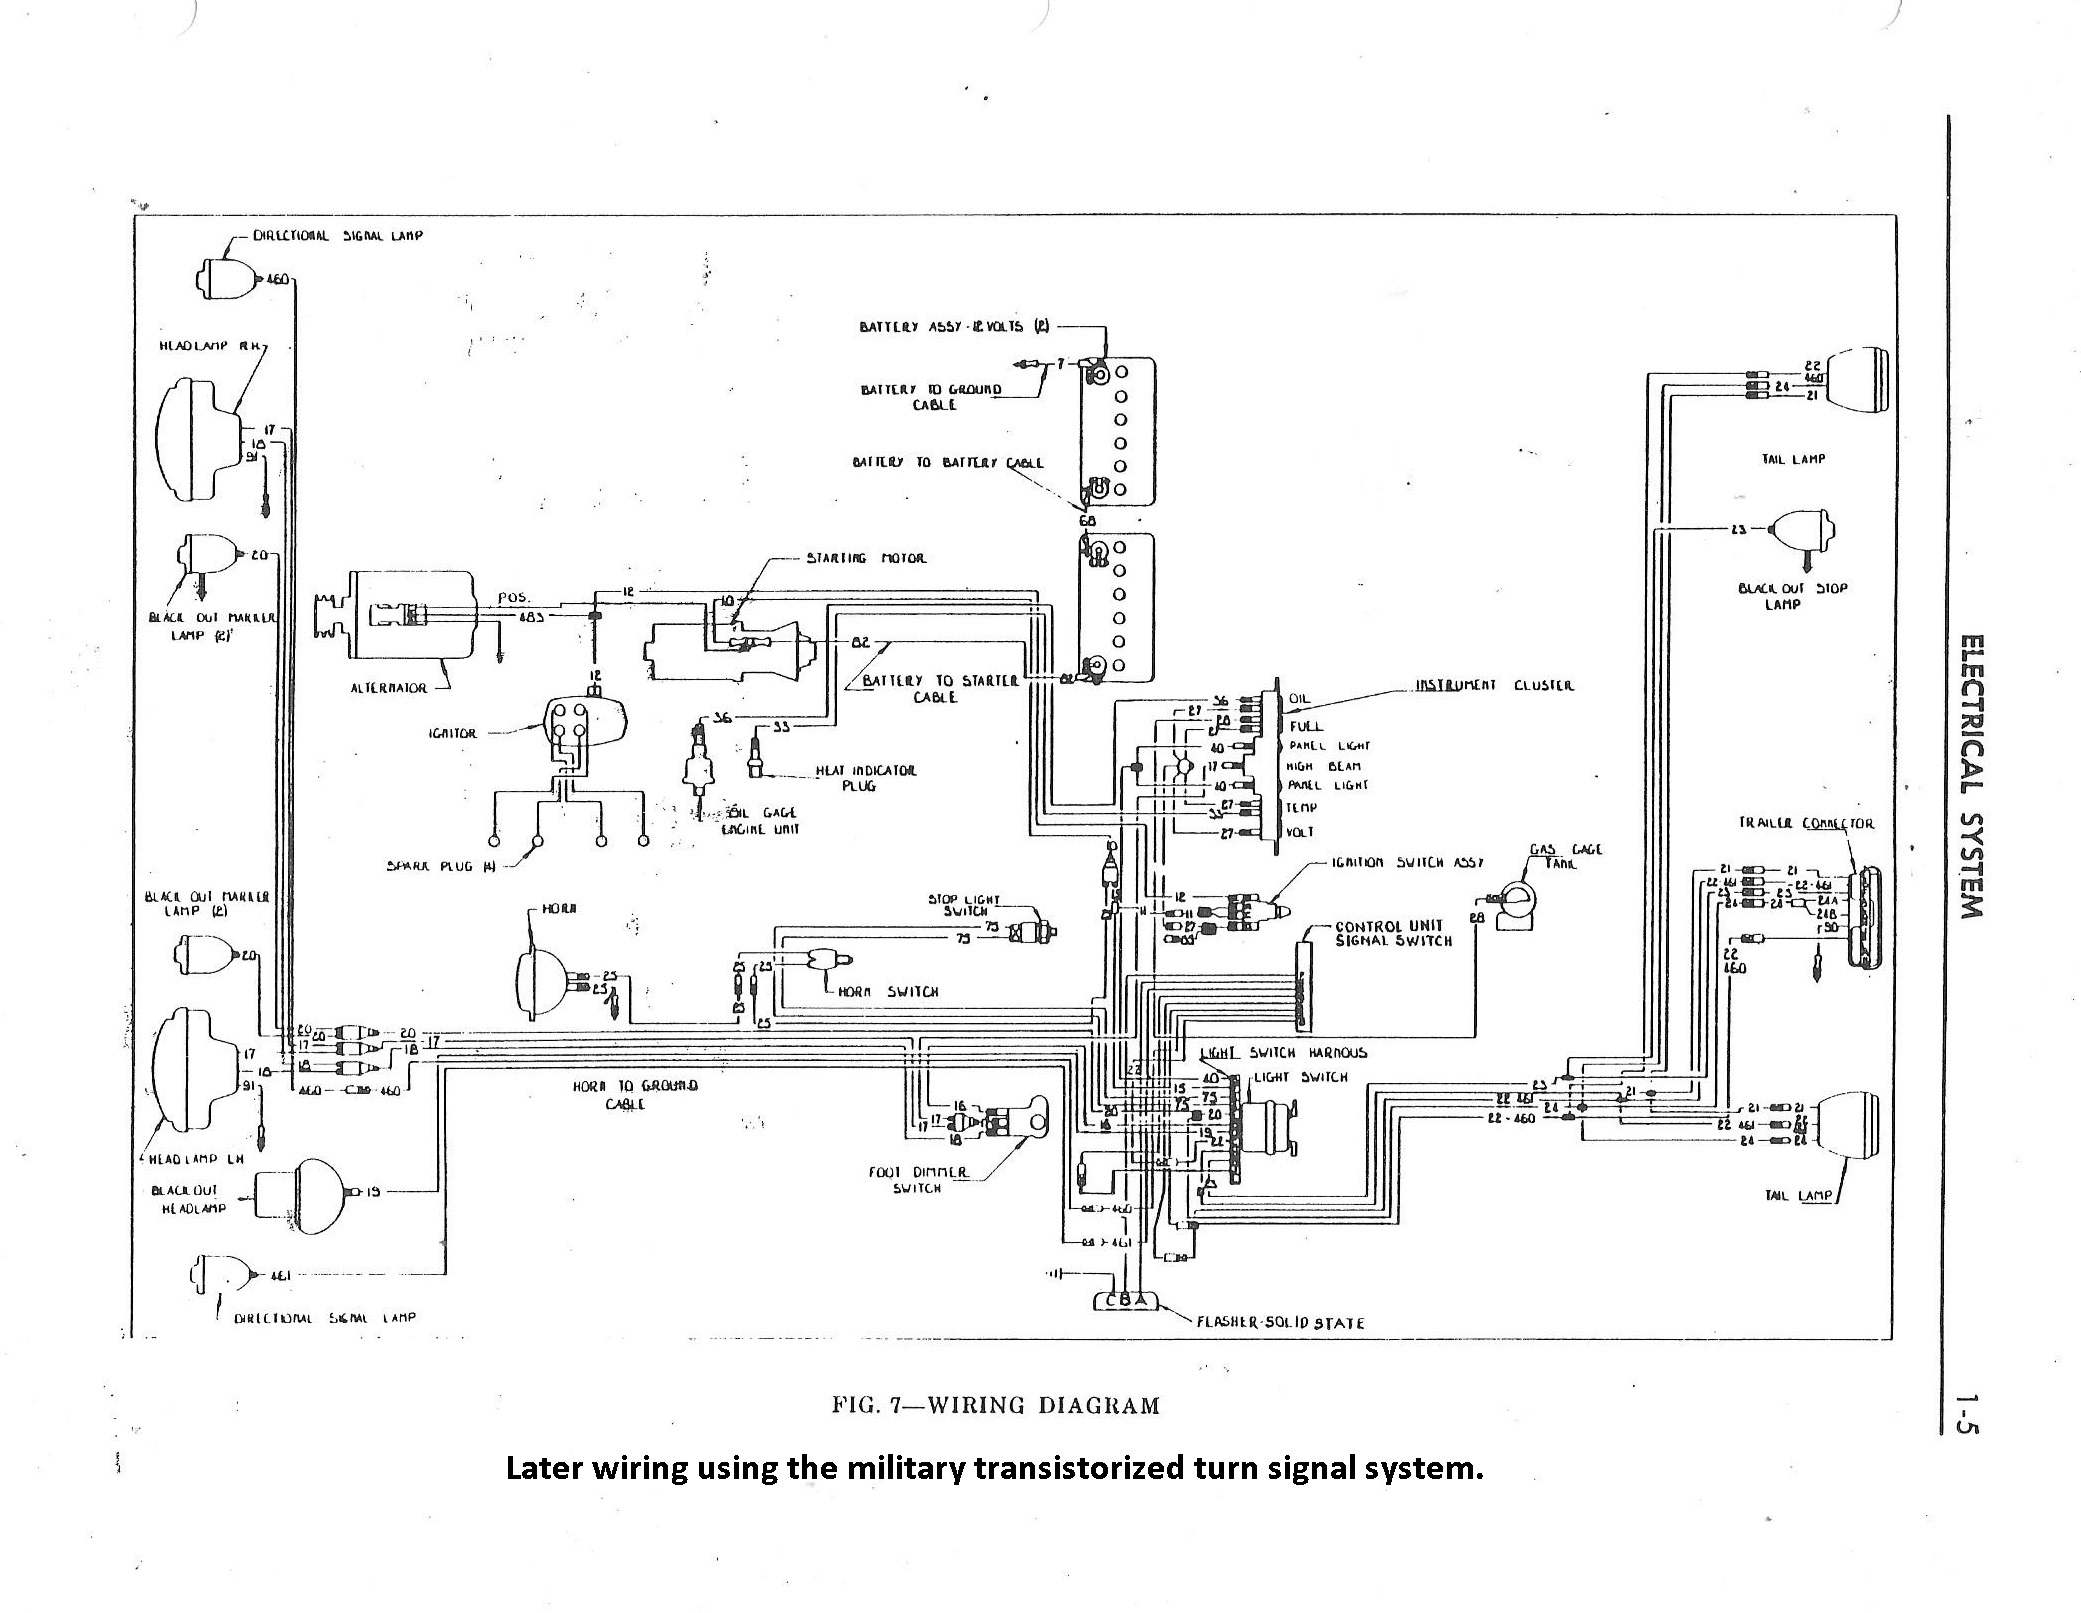 ... m38 wiring diagram 18 wiring diagram images wiring s jeep cj2a wiring  diagram 1951 s jeep